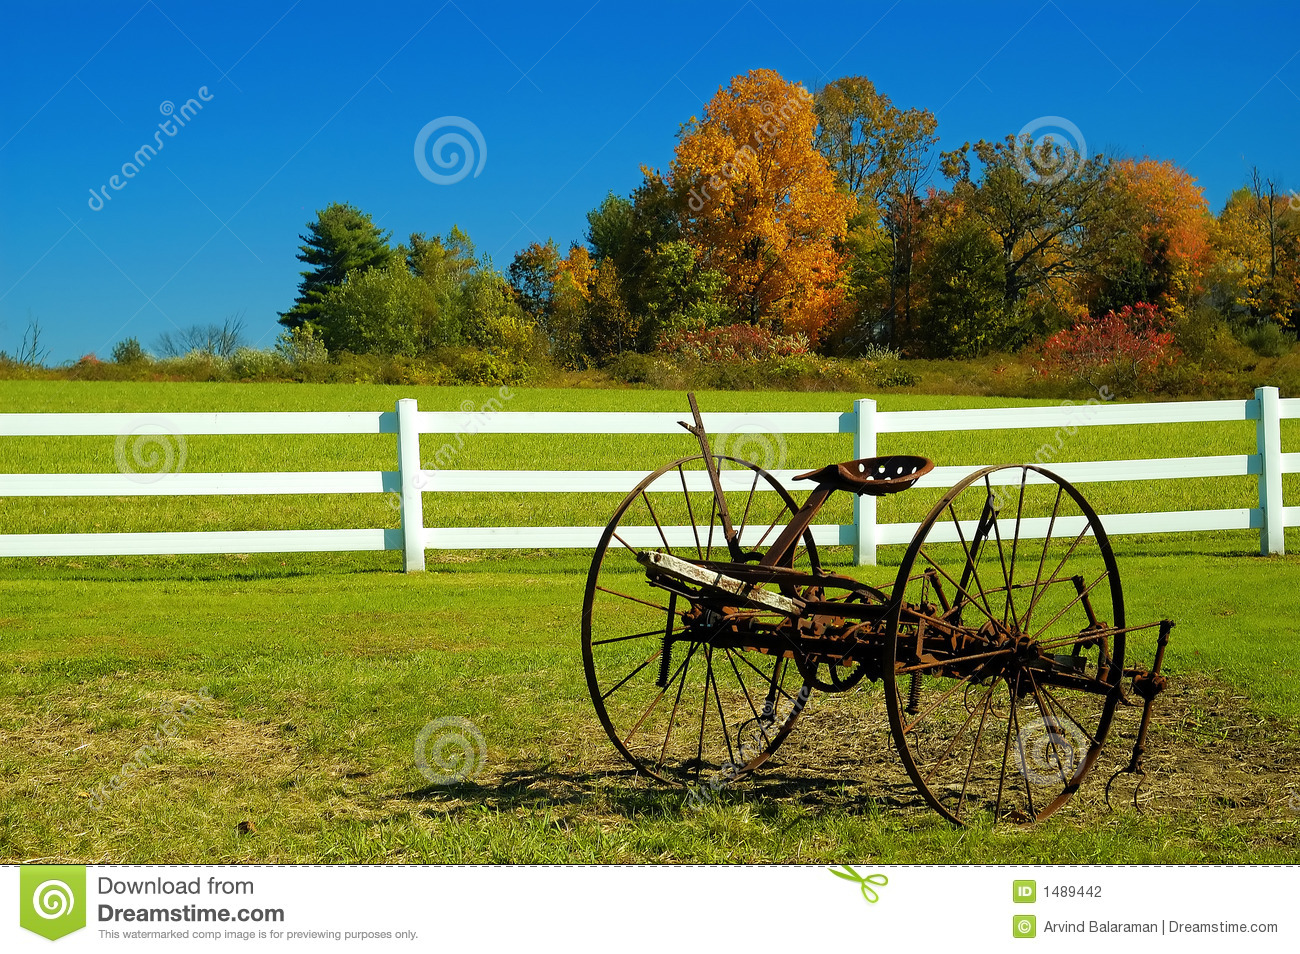 Fall in the air stock photography image 1489442